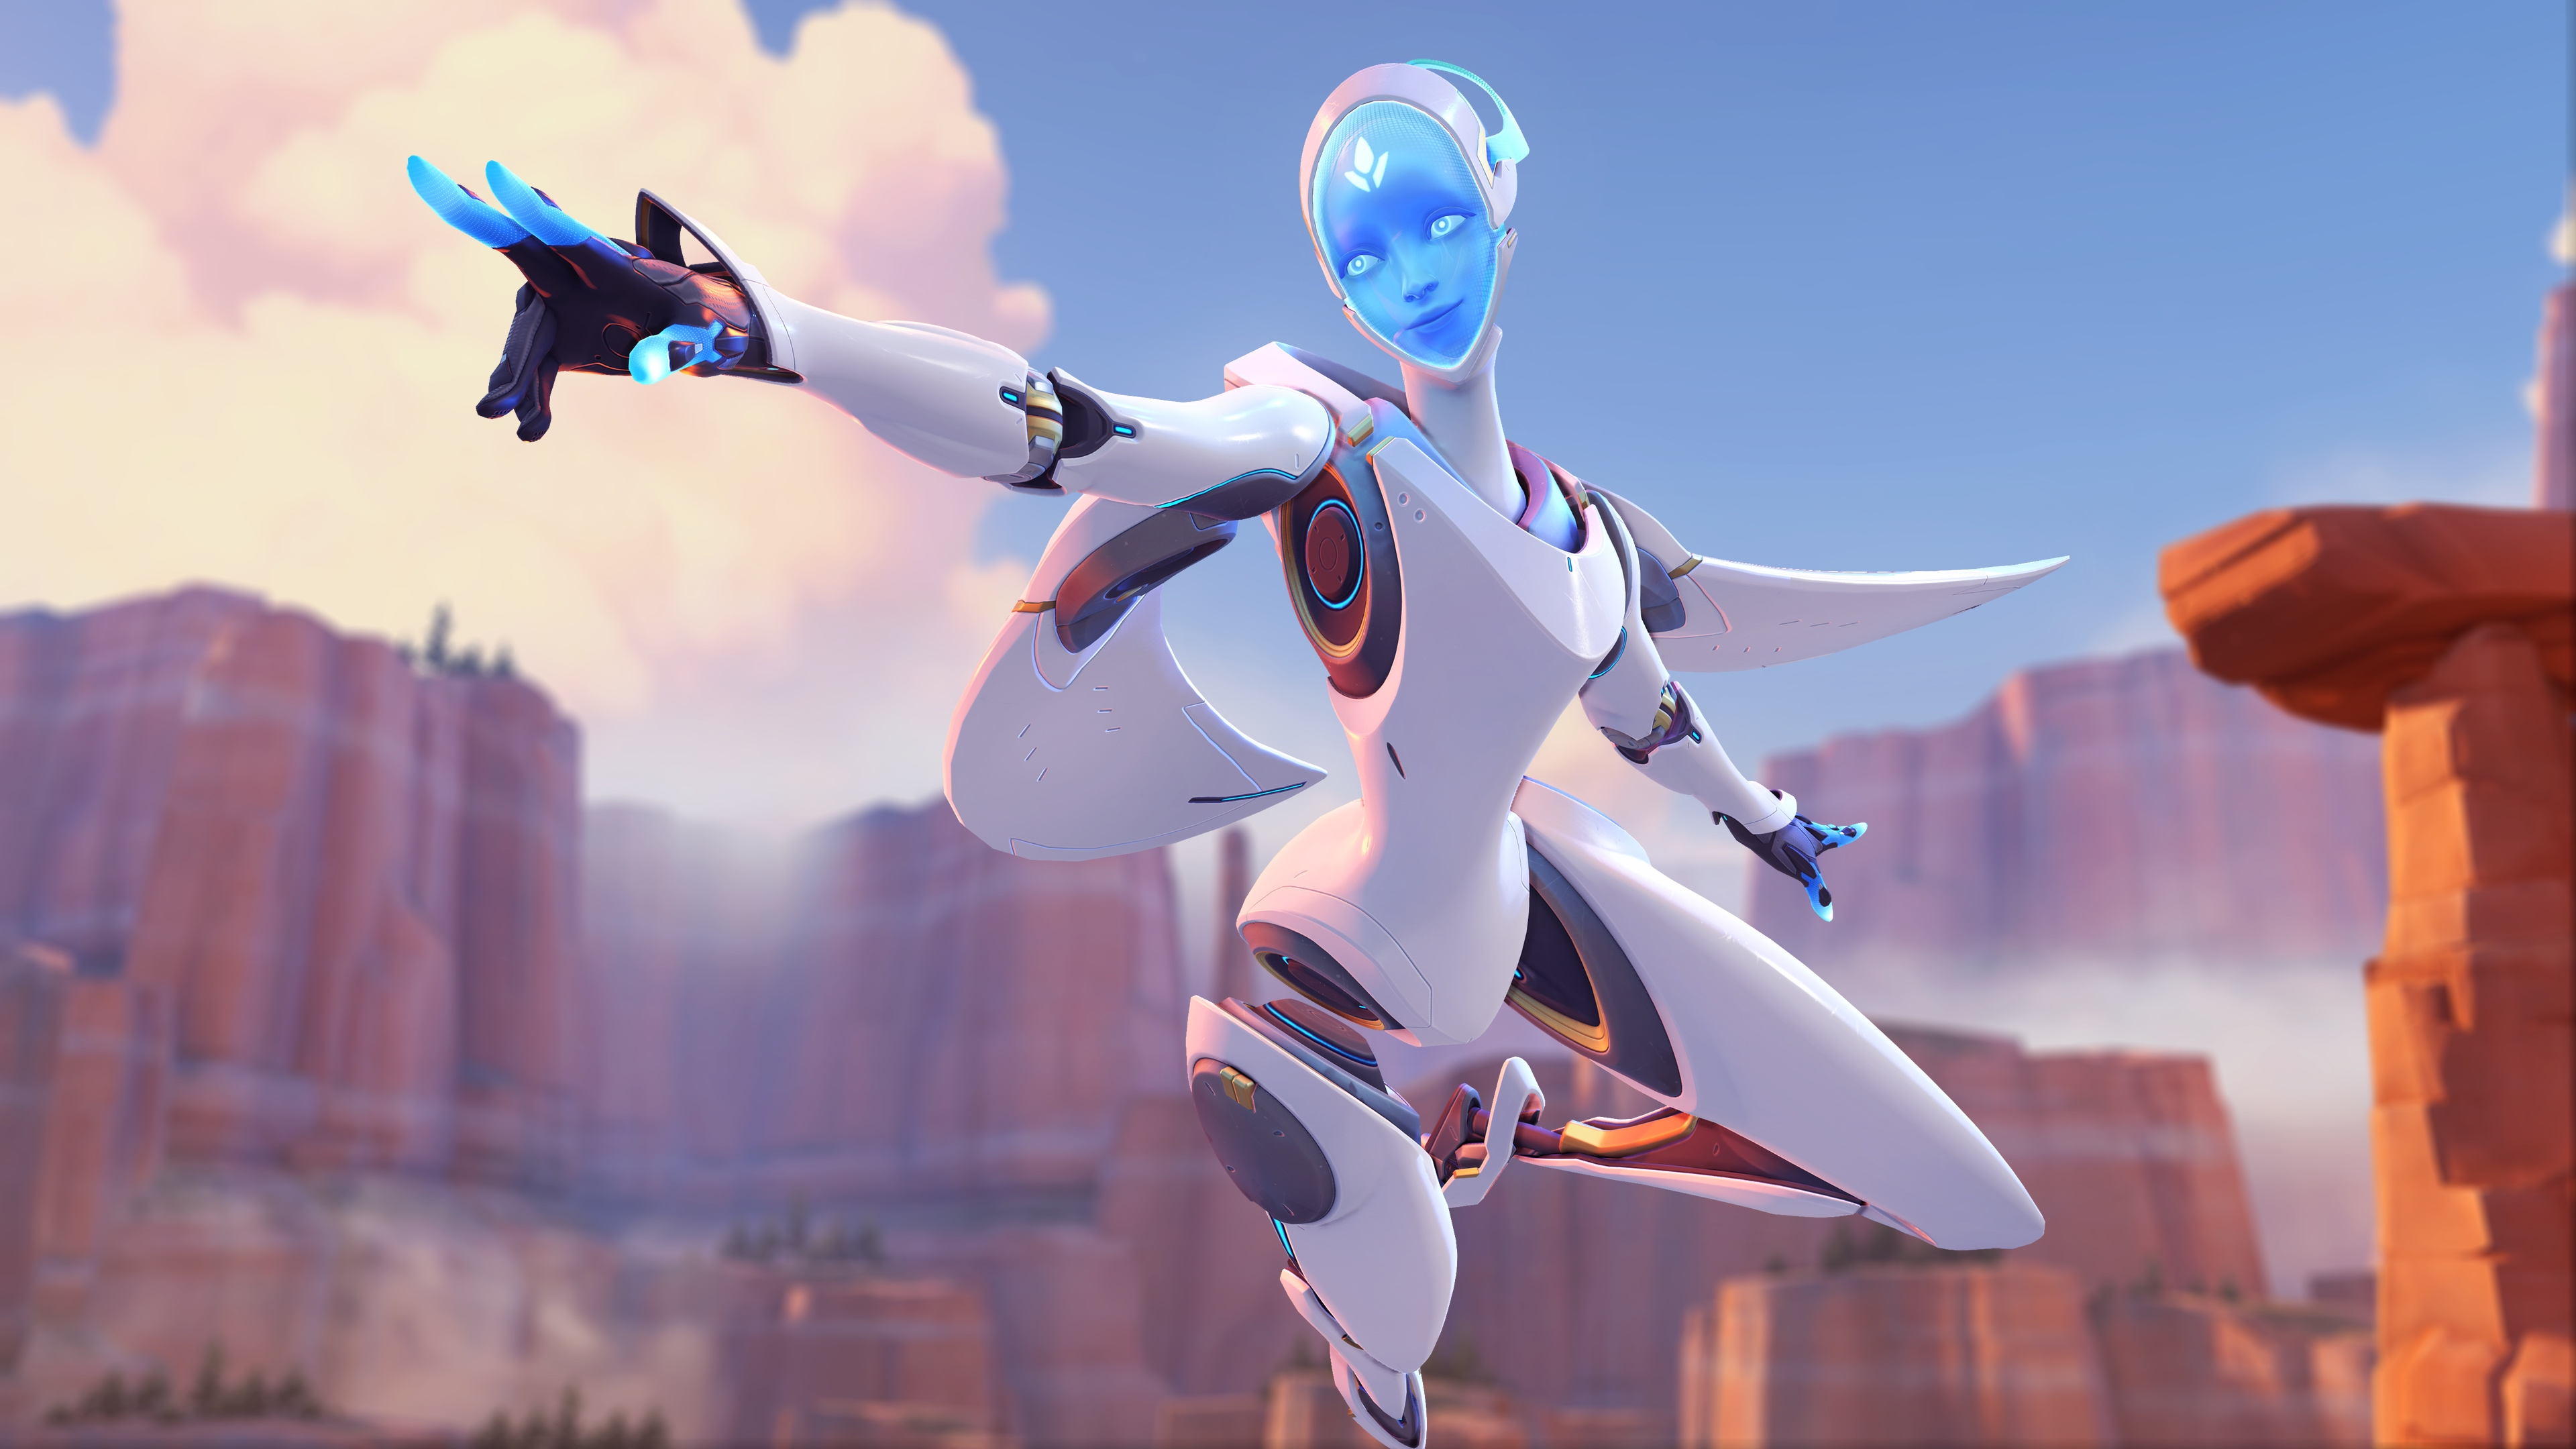 Echo, the AI robot hero, flies over Route 66 in a screenshot from Overwatch